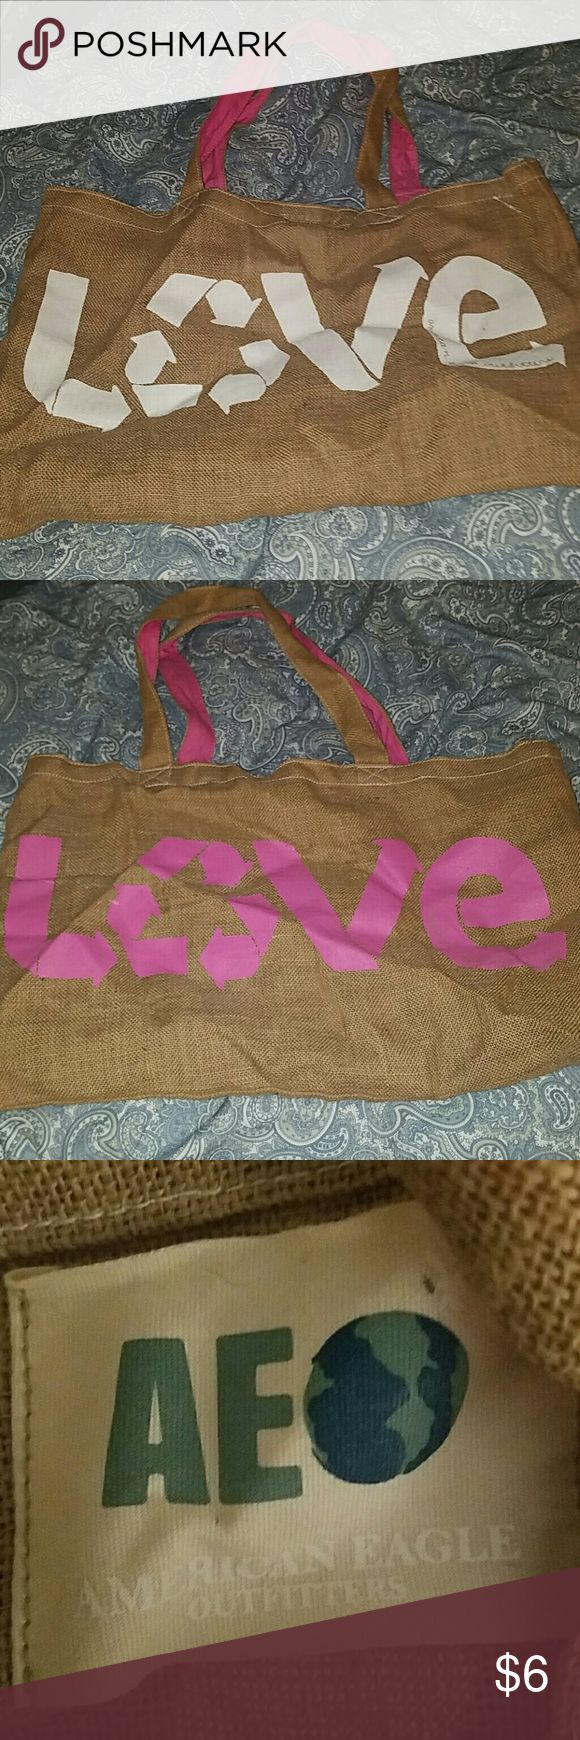 """American Eagle Tote Bag Reusable tote bag. Burlap material. 13x23"""" when laid flat. Different color on each side American Eagle Outfitters Bags Totes"""